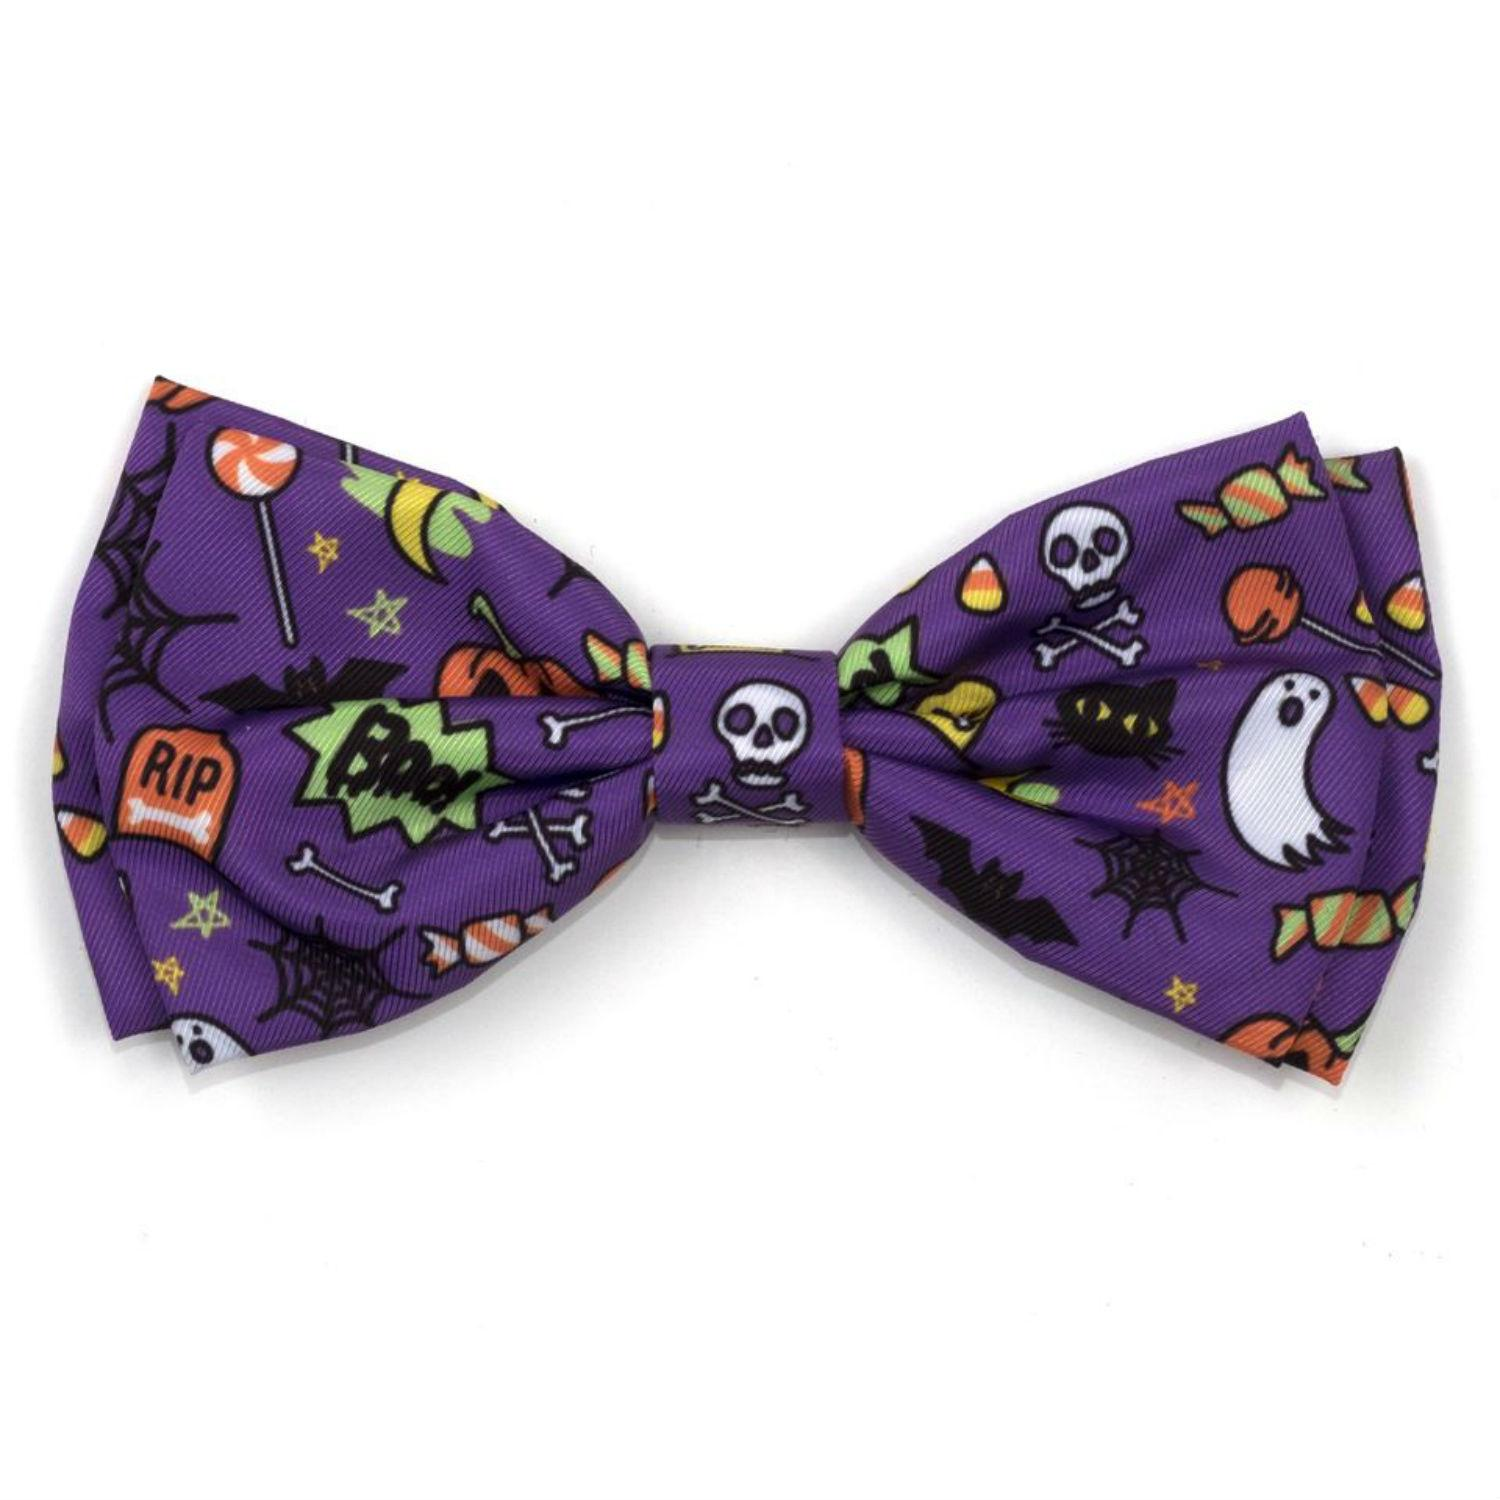 Worthy Dog Fright Night Dog and Cat Bow Tie Collar Attachment